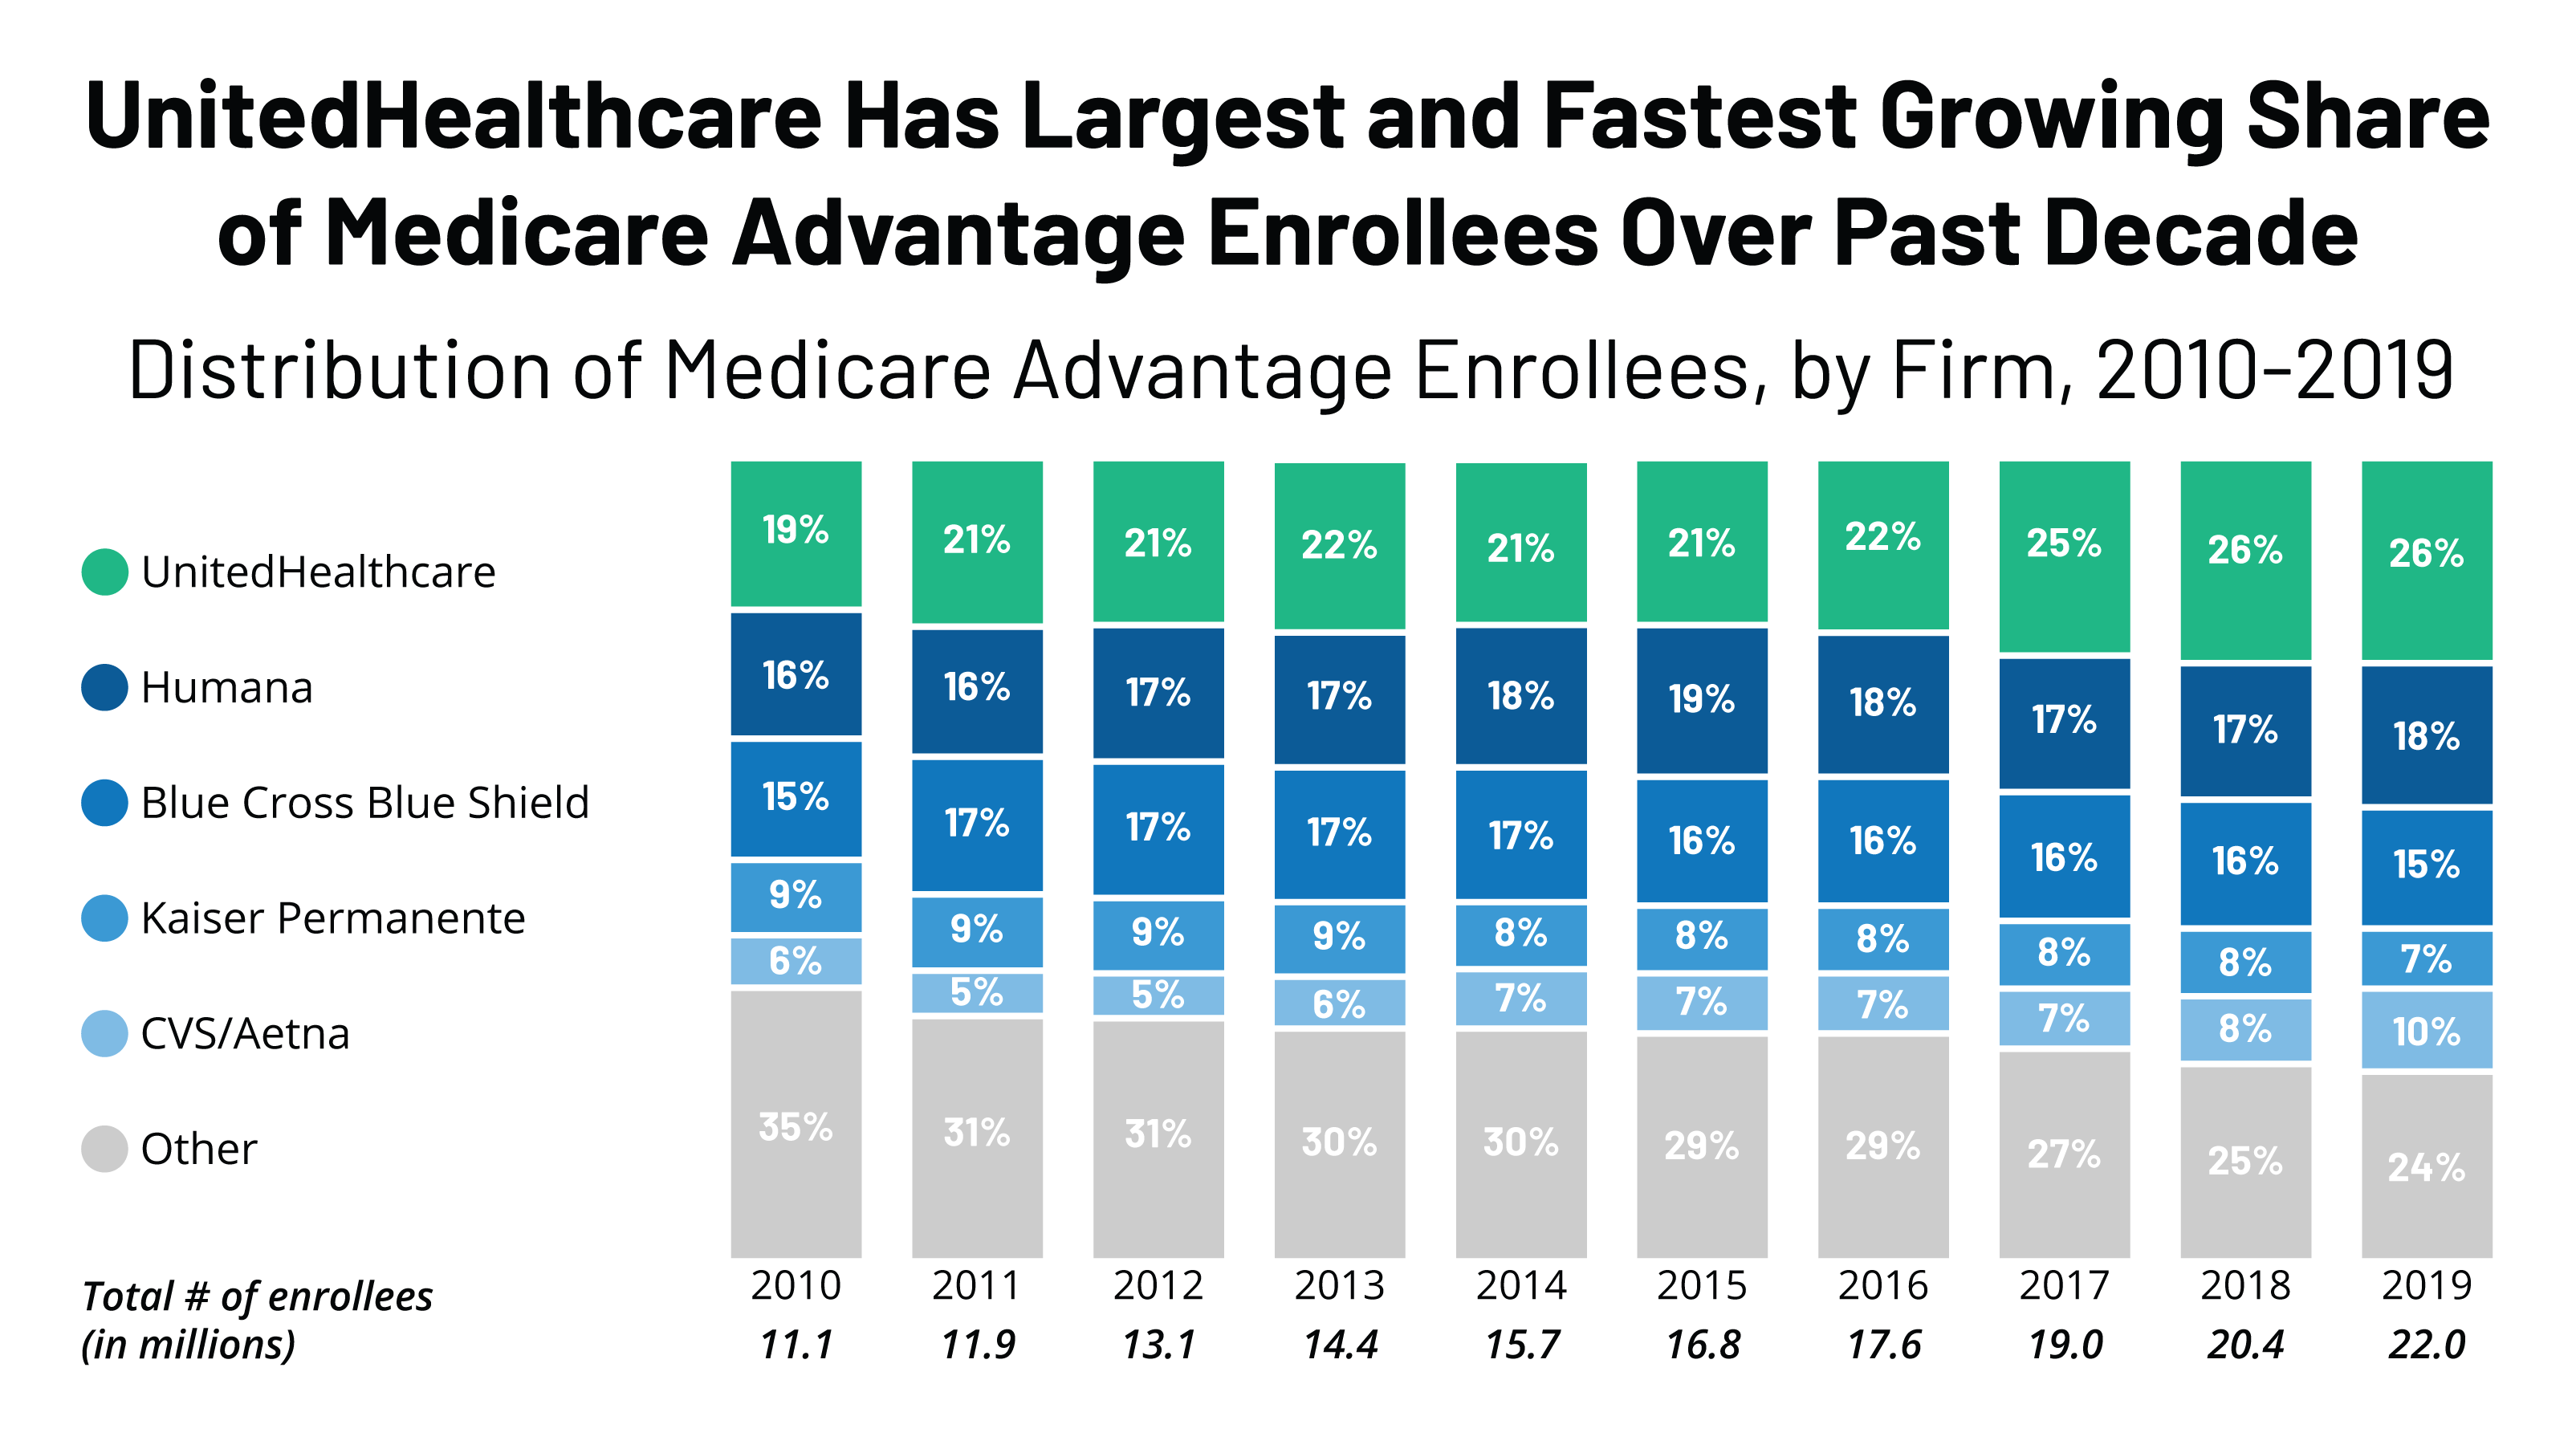 UnitedHealthcare Has Largest and Fastest Growing Share of ...